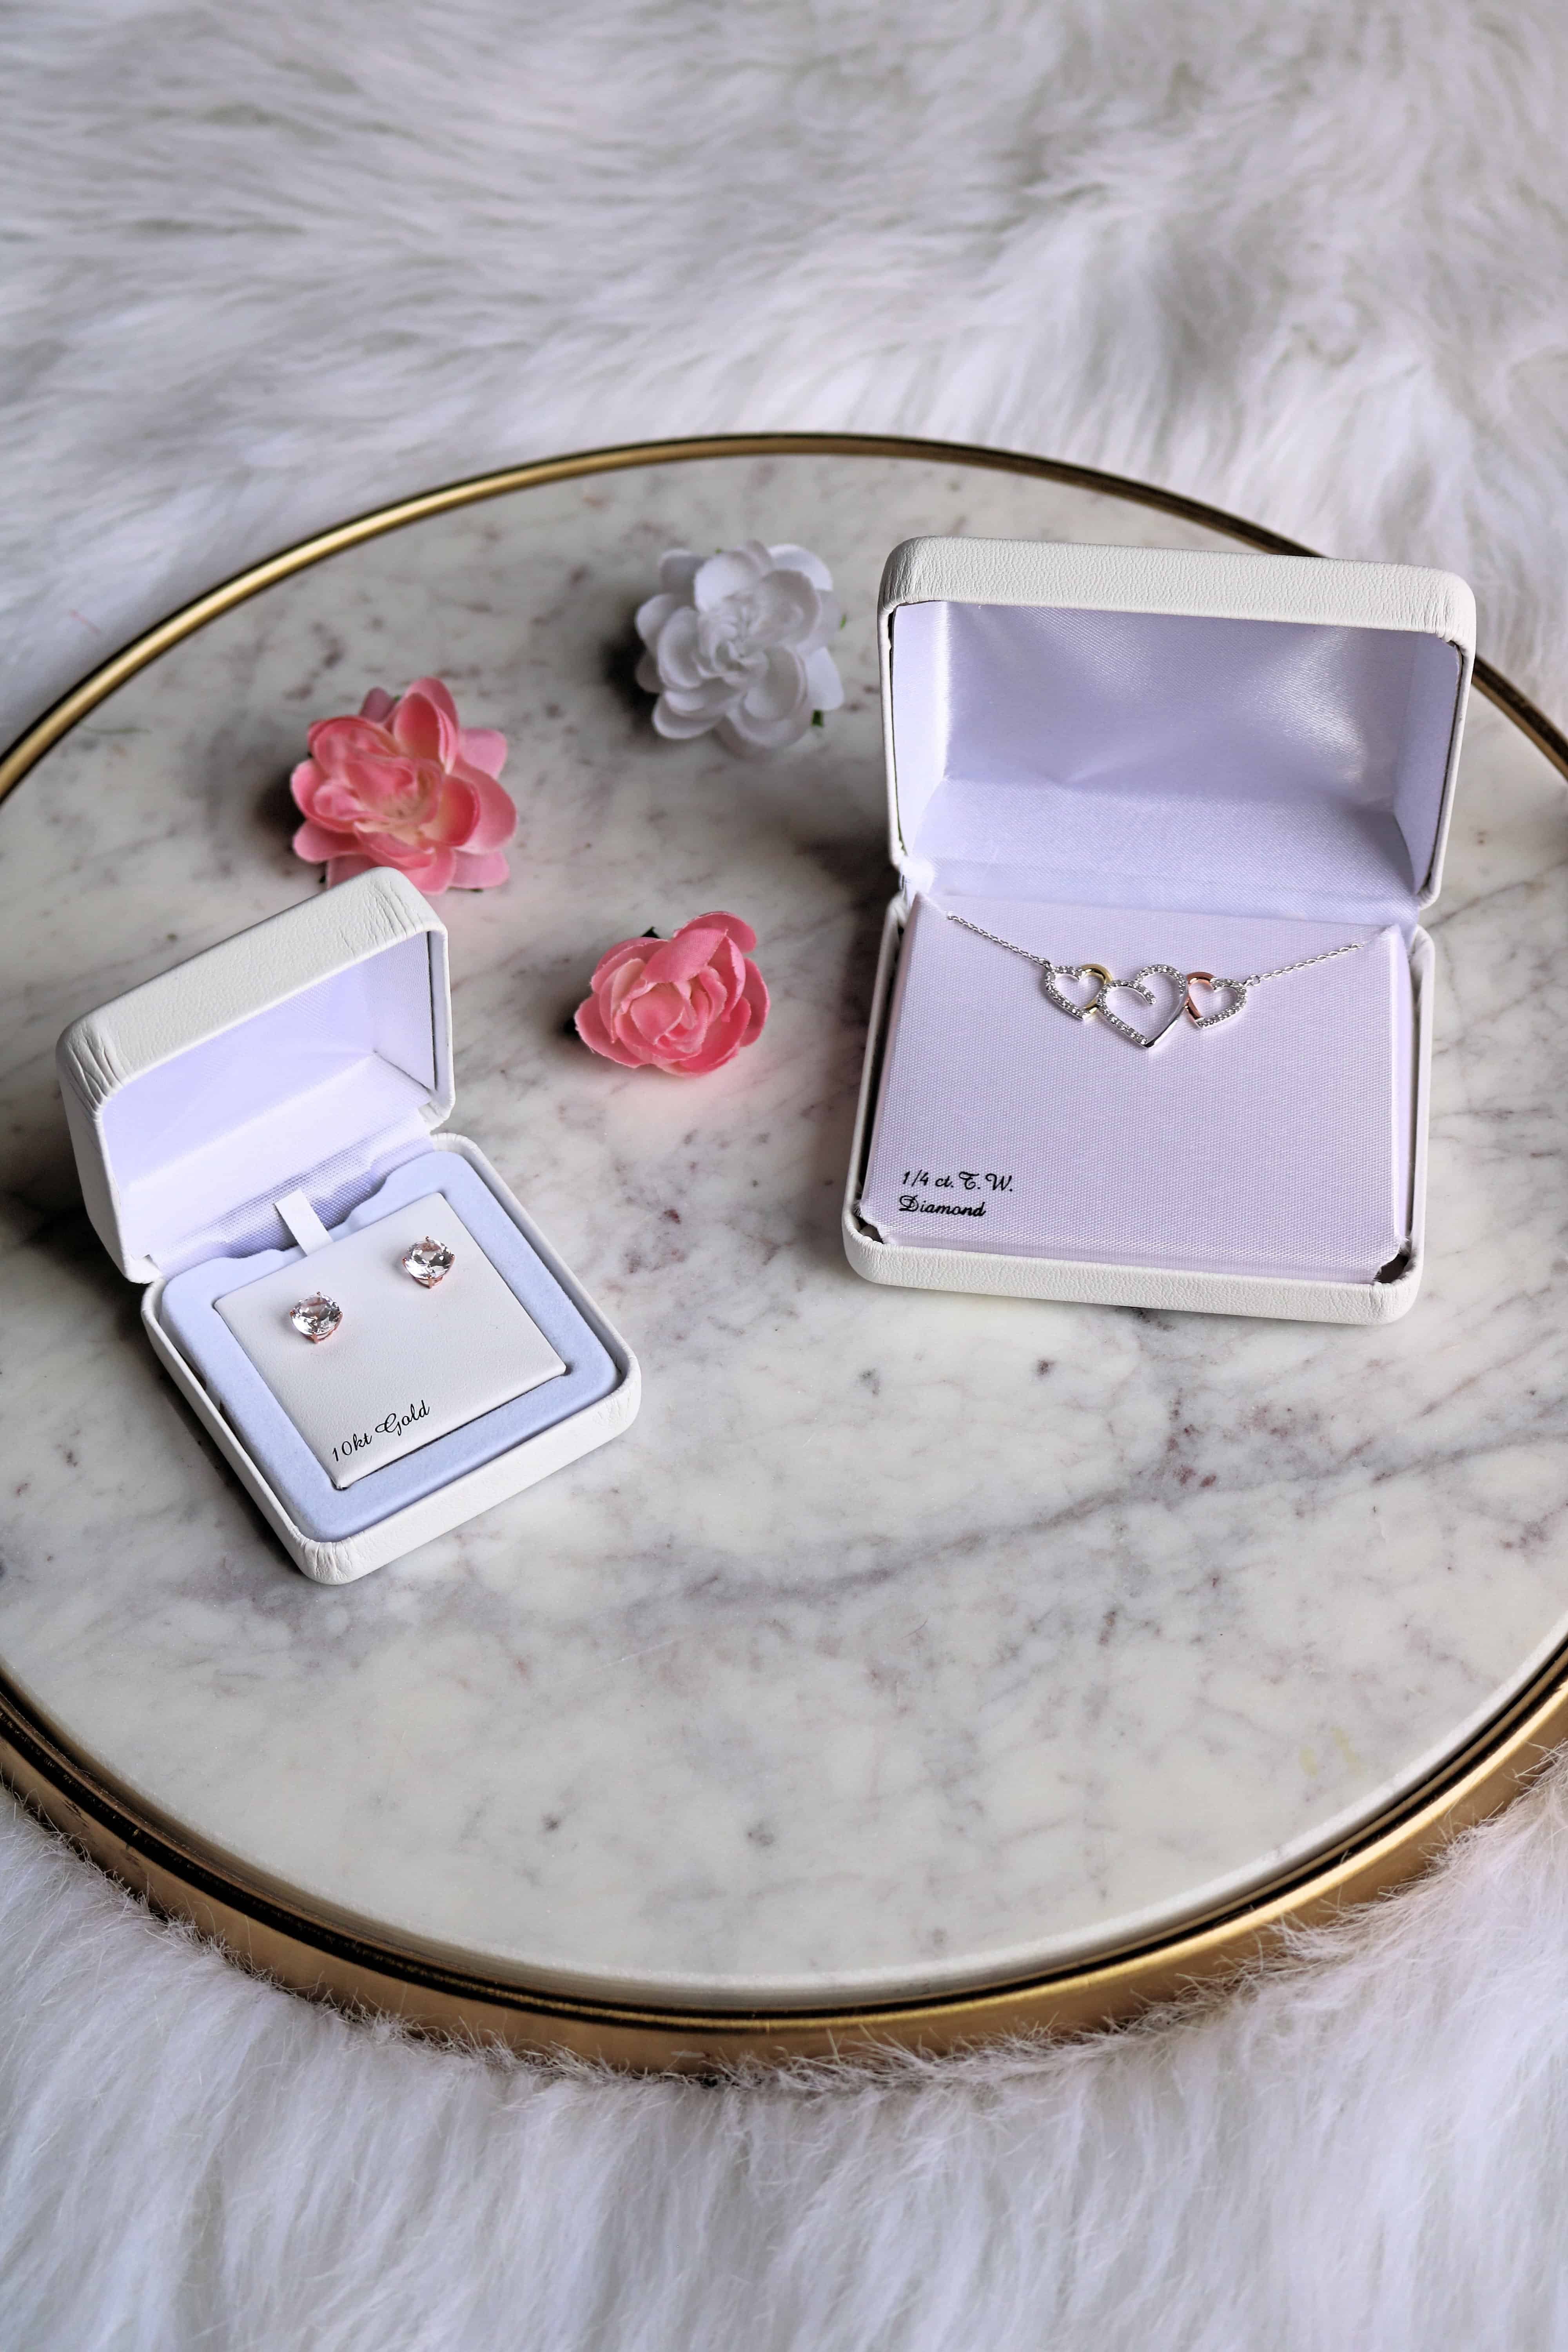 Give your Mom what she really wants this year for Mother's Day! Check out this roundup ofbeautiful and affordable mother's day jewelry gifts at Kohl's that both you and your Mom will love! From gorgeous necklaces, rings, earrings, and gift boxes, there's something for every Mom out there! #ad #KohlsJewelry #KohlsFinds #mothersdayjewelry #mothersdaygifts